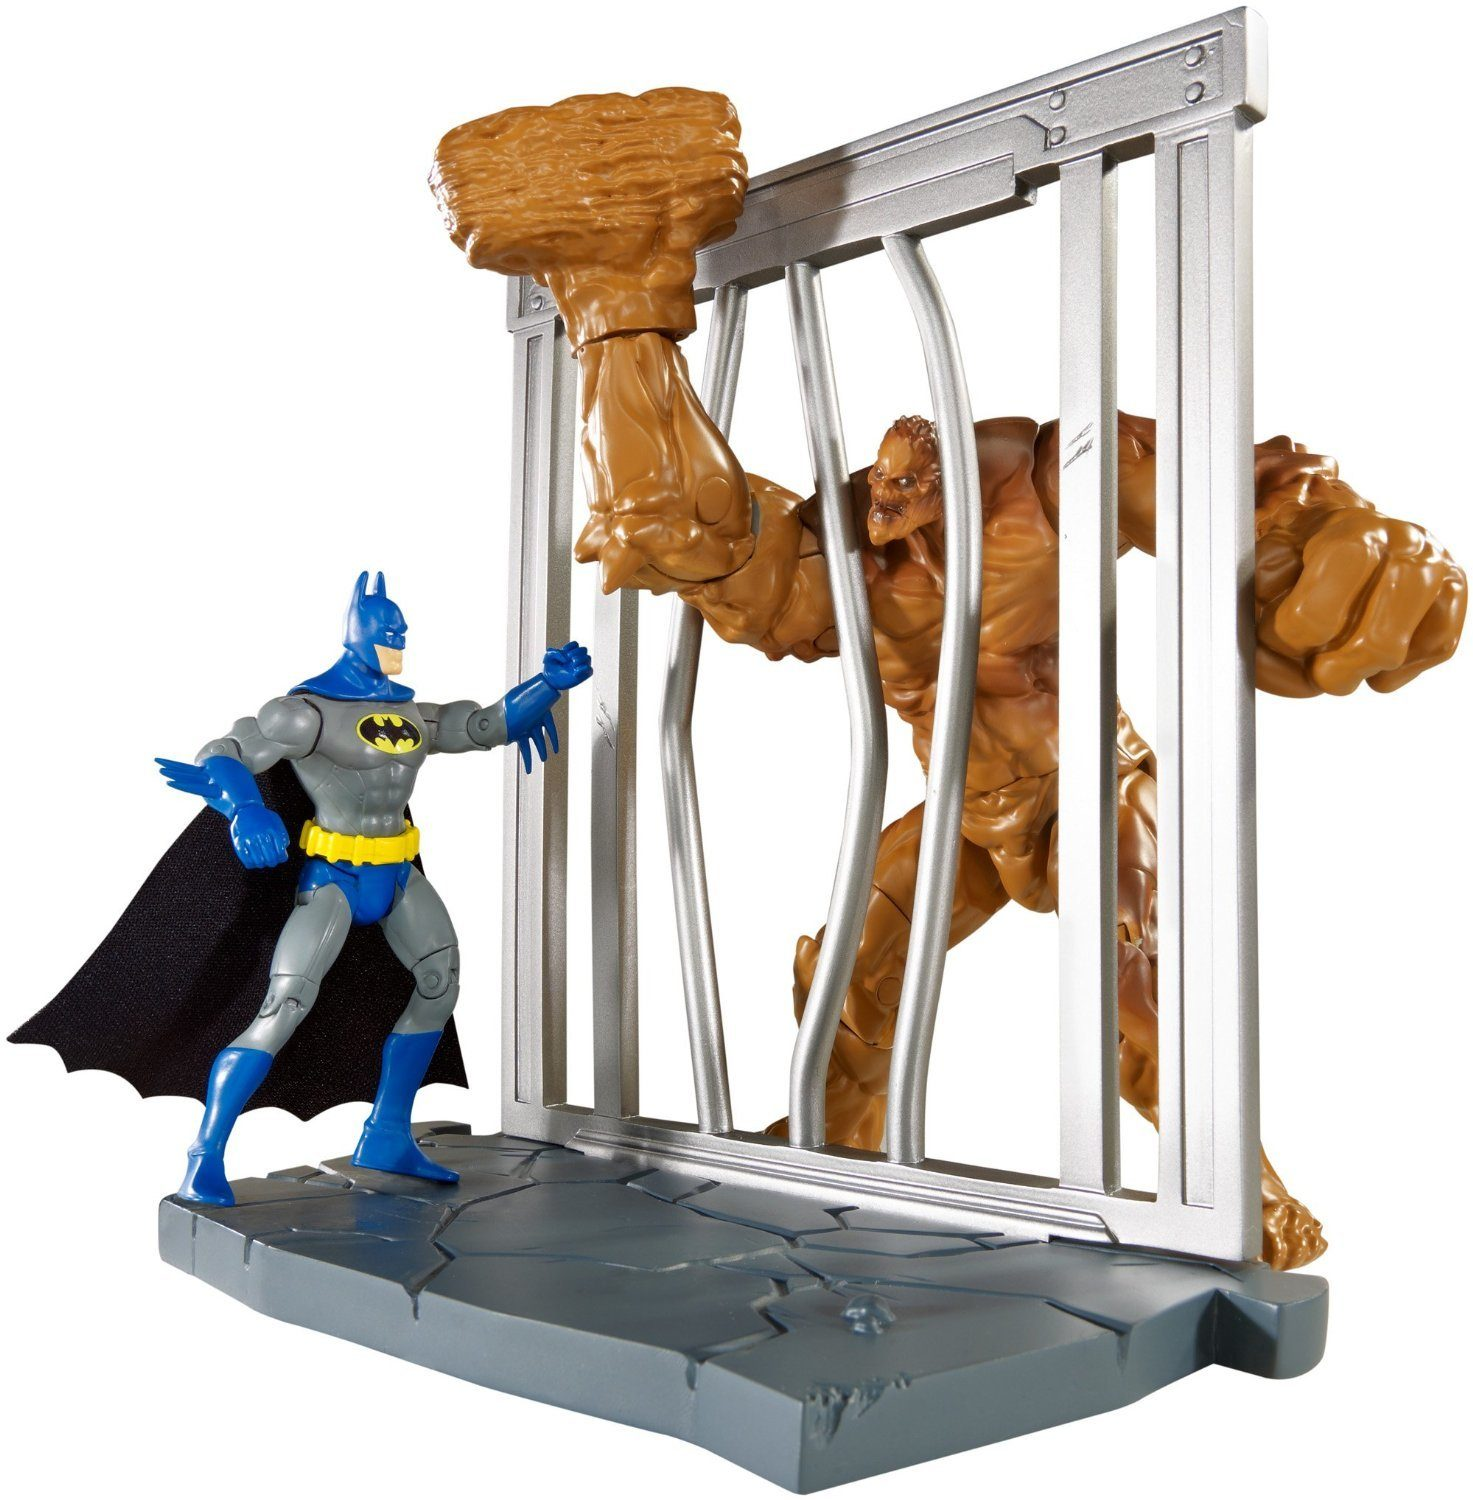 DC Comics Multiverse 4-Inch Classic Comic Skin Batman and Clayface Figure 2-Pack Only $8.59 (Reg. $24.99)!